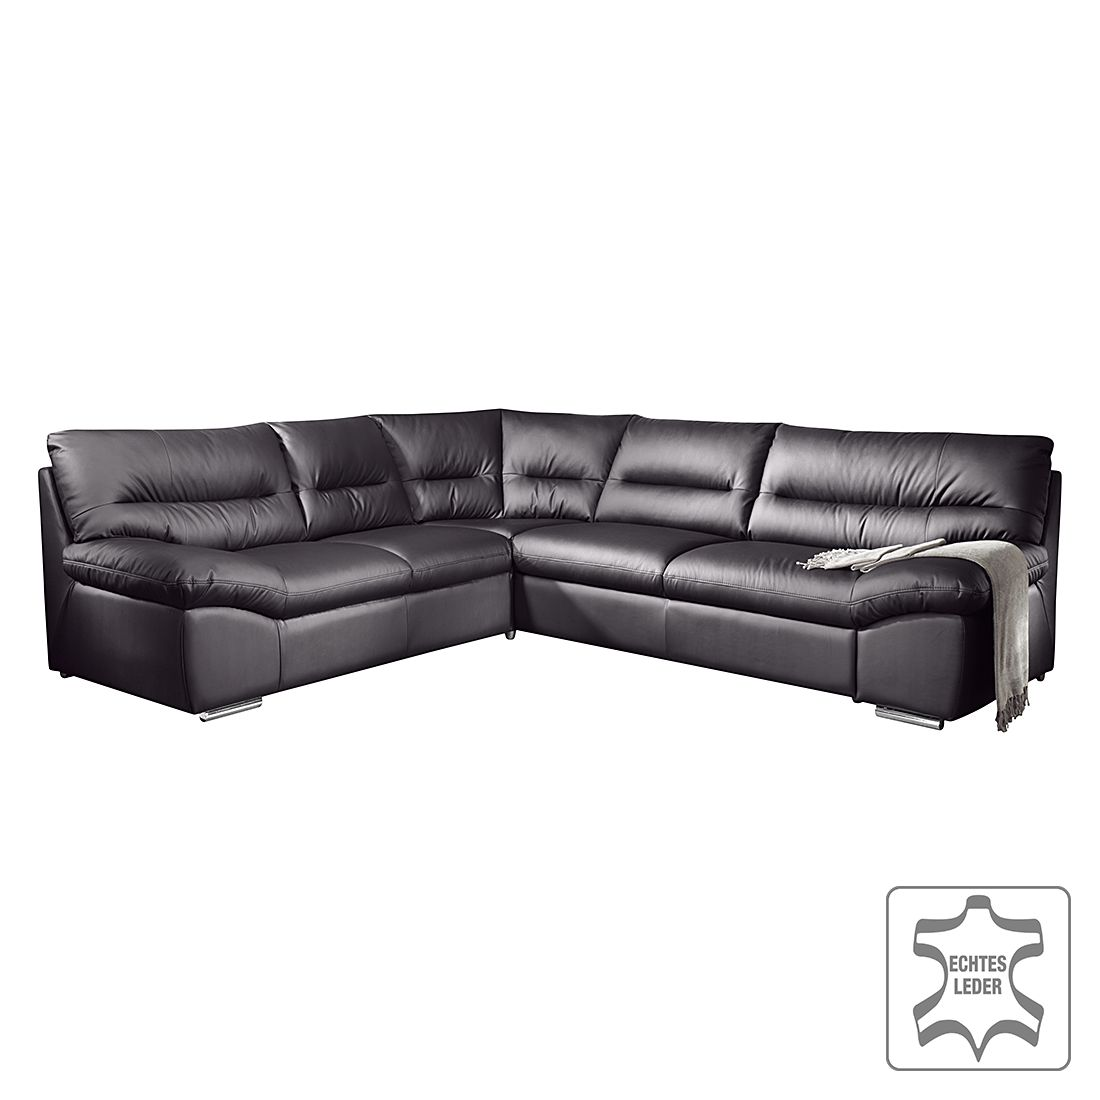 leder ecksofa mit schlaffun preis vergleich 2016. Black Bedroom Furniture Sets. Home Design Ideas